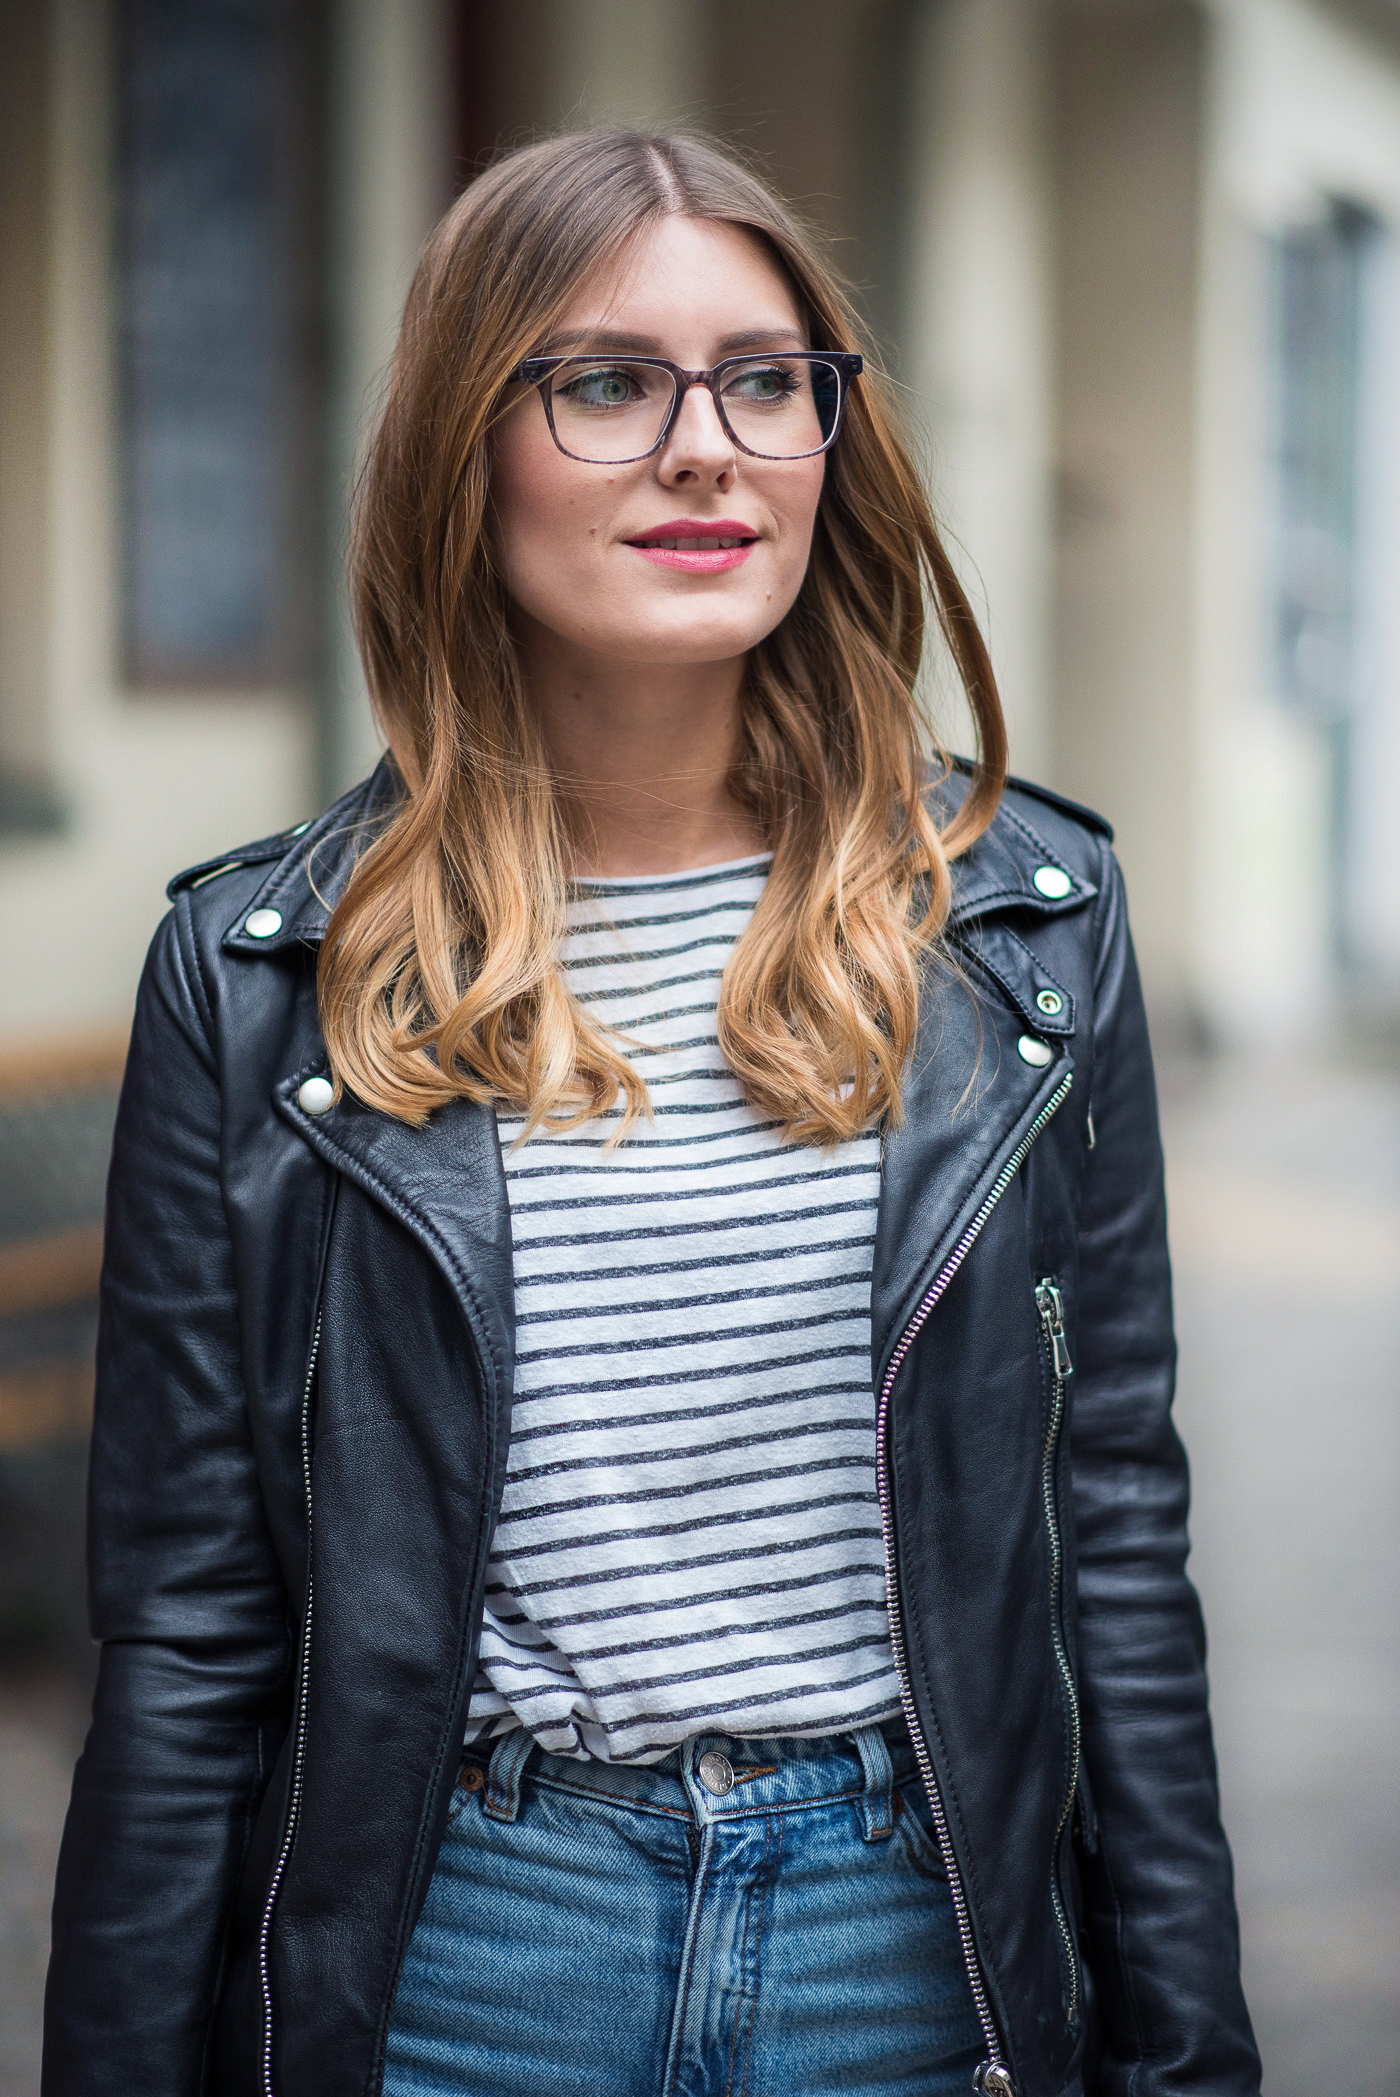 Blogger_for_Mister_Spex_Brille_Outfit_5